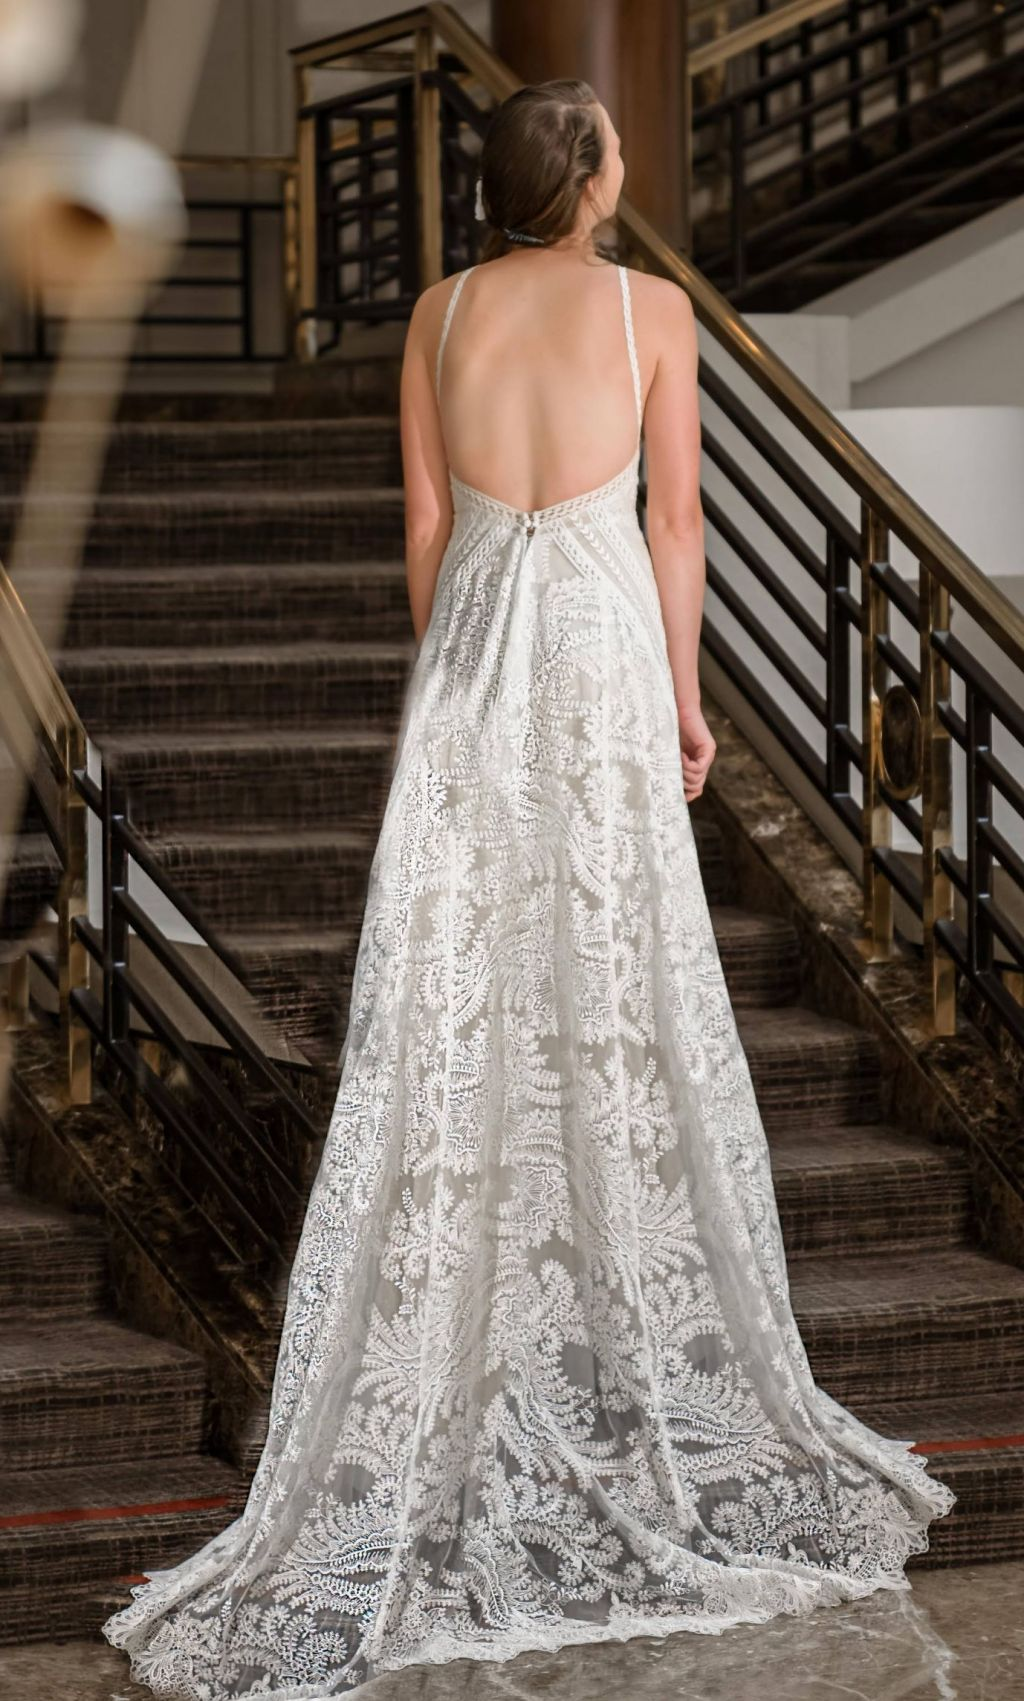 All Who Wander - India wedding dress